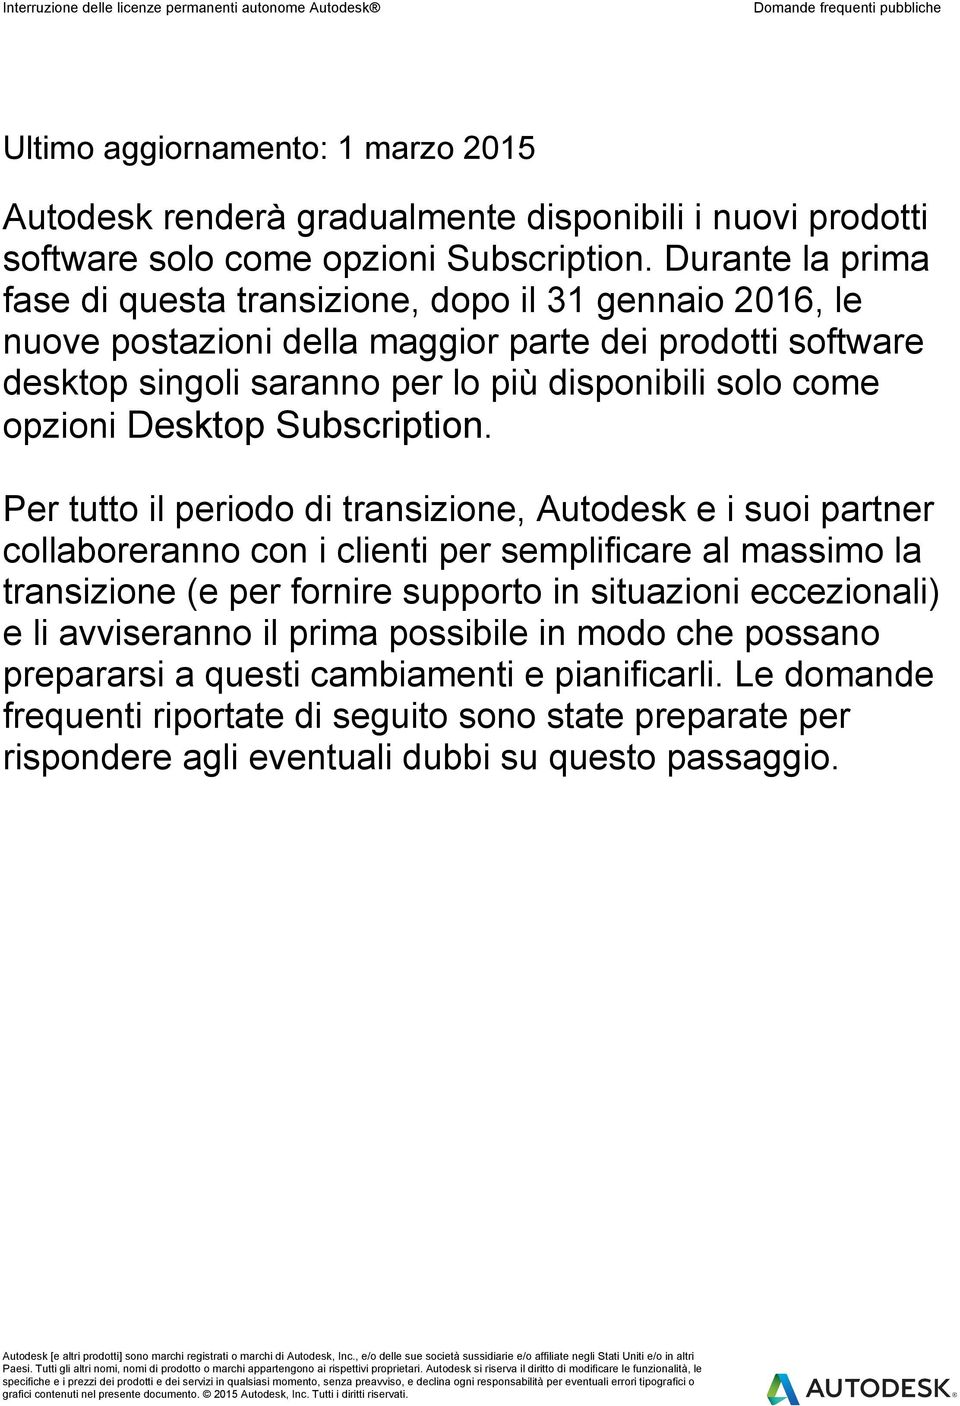 opzioni Desktop Subscription.